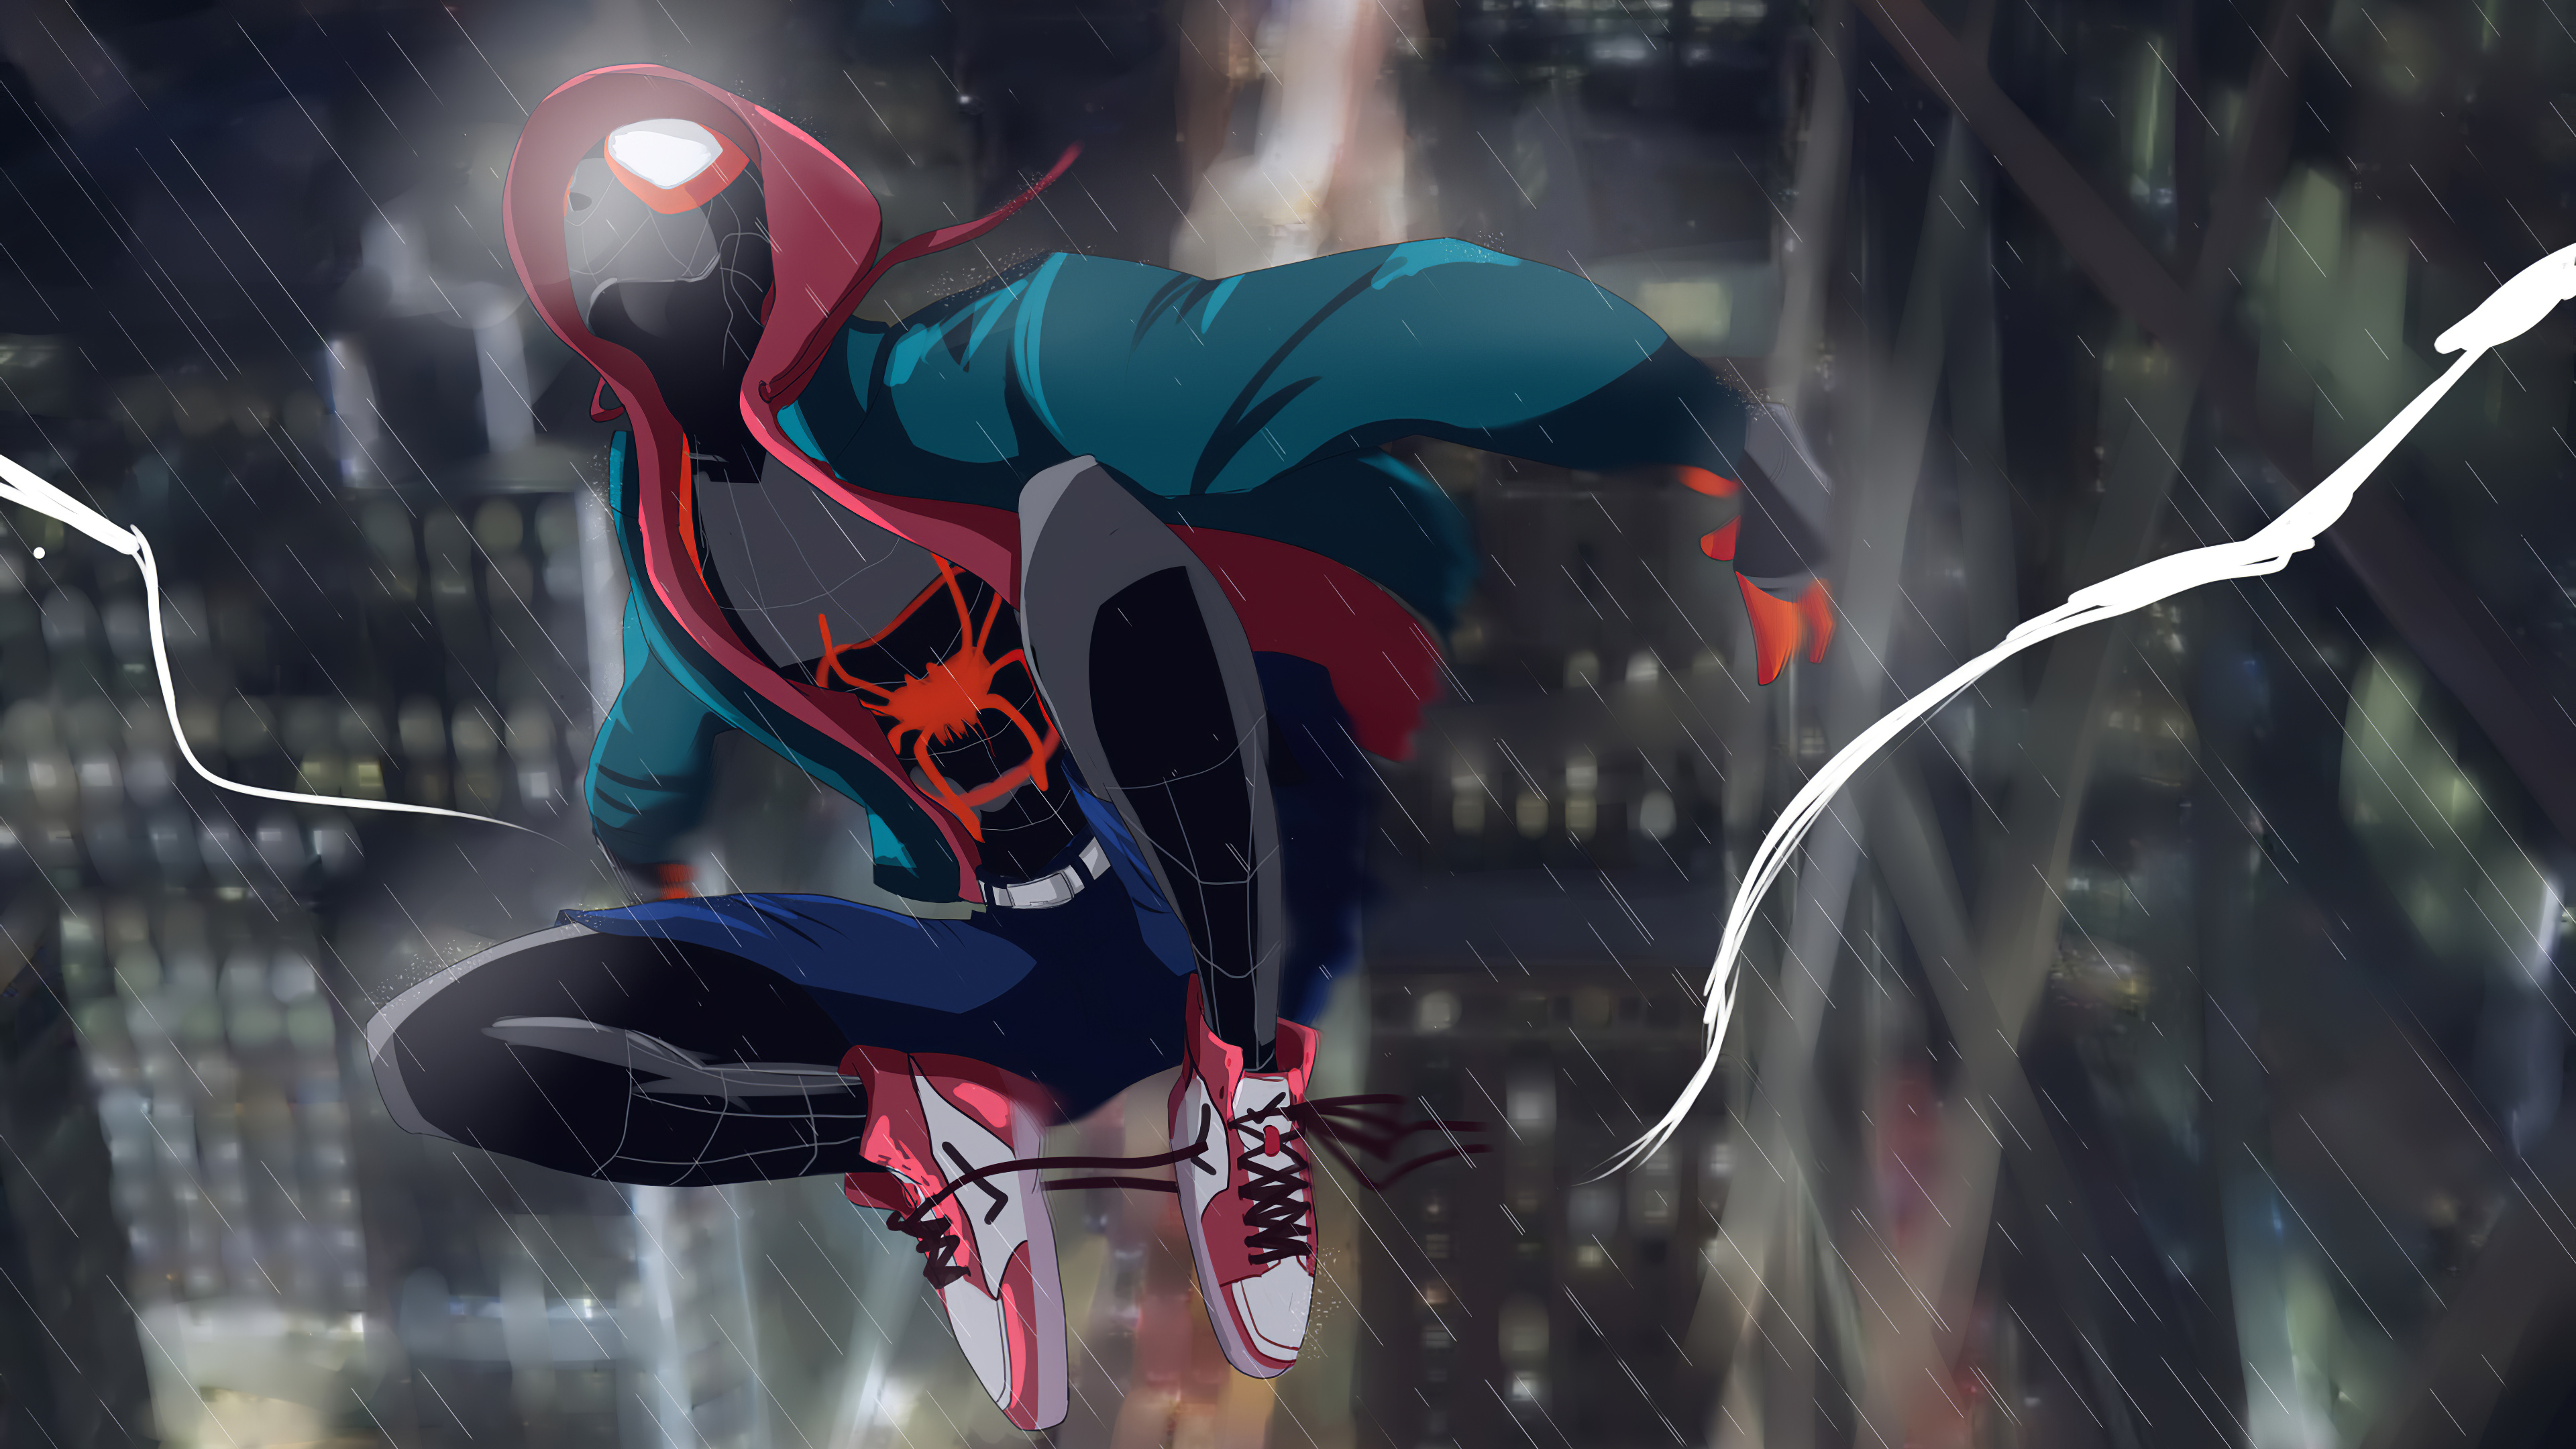 spider-miles is electric and needs to tie his shoes